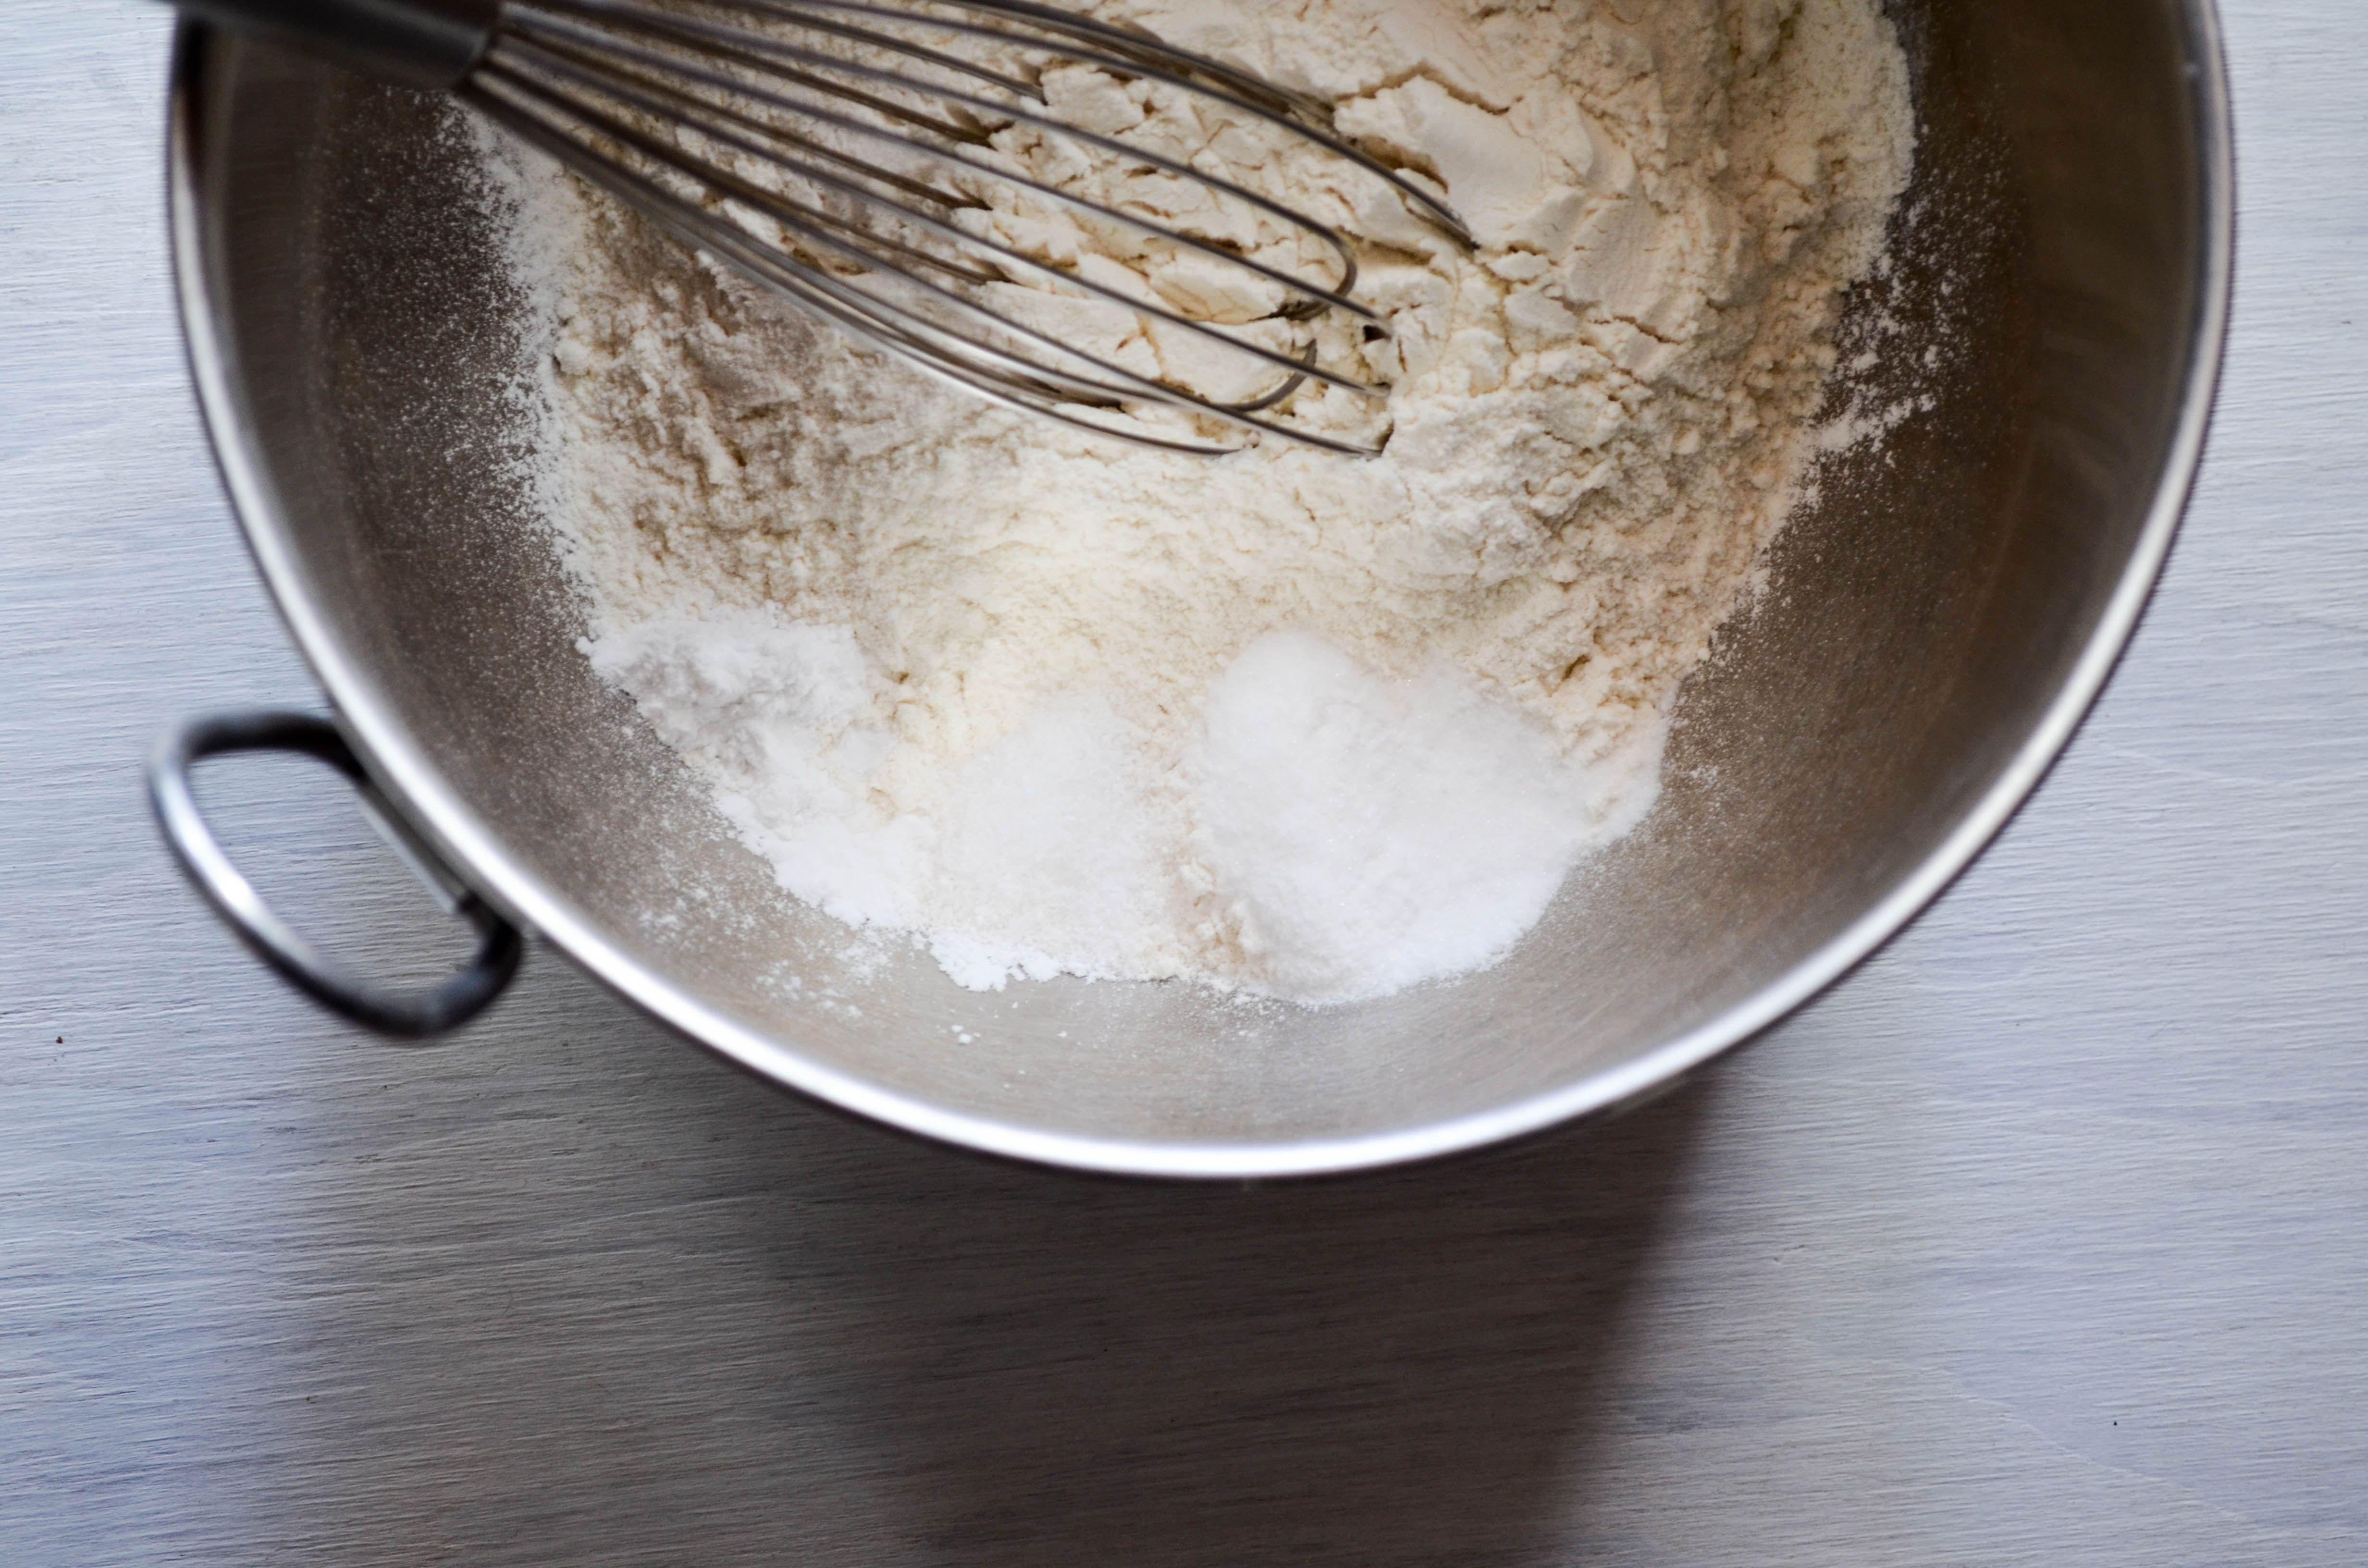 Dry Ingredients for Funfetti Cookies